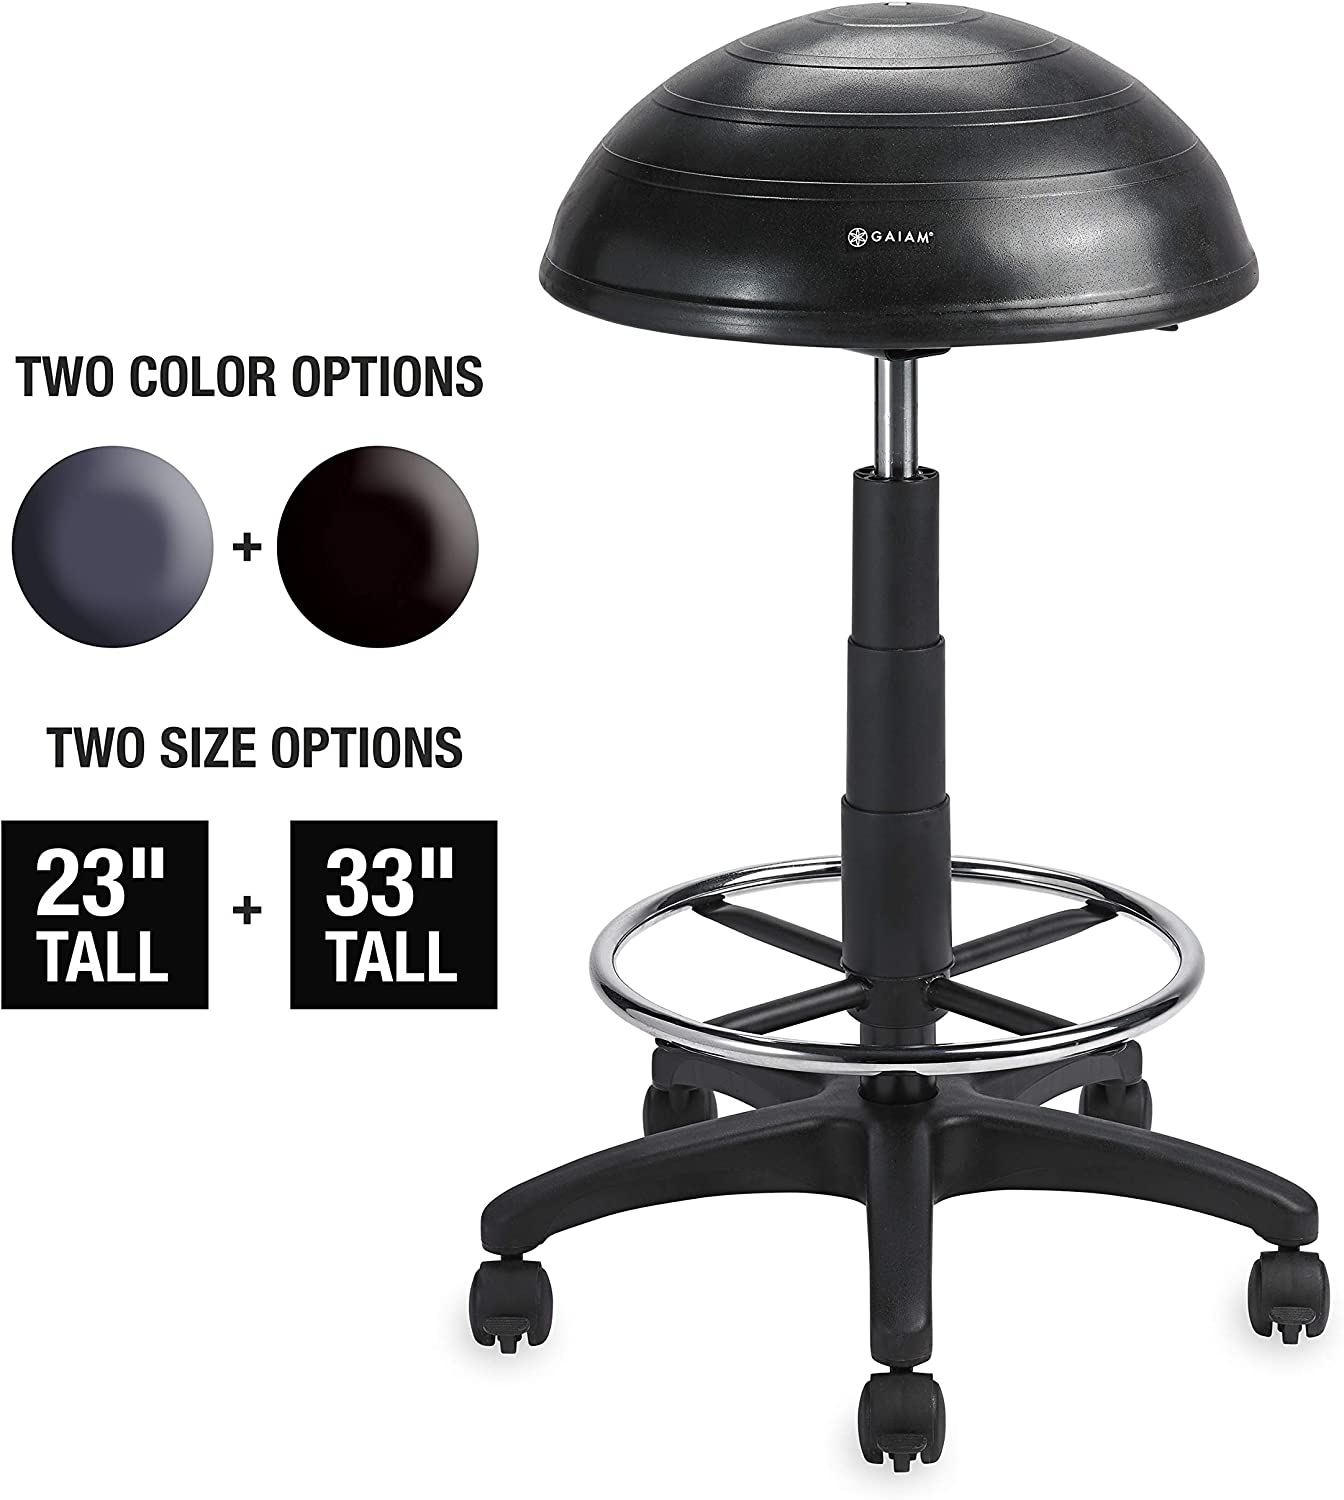 Gaiam Balance Ball Chair Stool, Half-Dome Stability Ball Adjustable Tall Office Sit Stand Swivel Desk Chair Drafting Stool with Round Foot Rest for Standing Desks Home or Office - Black 33